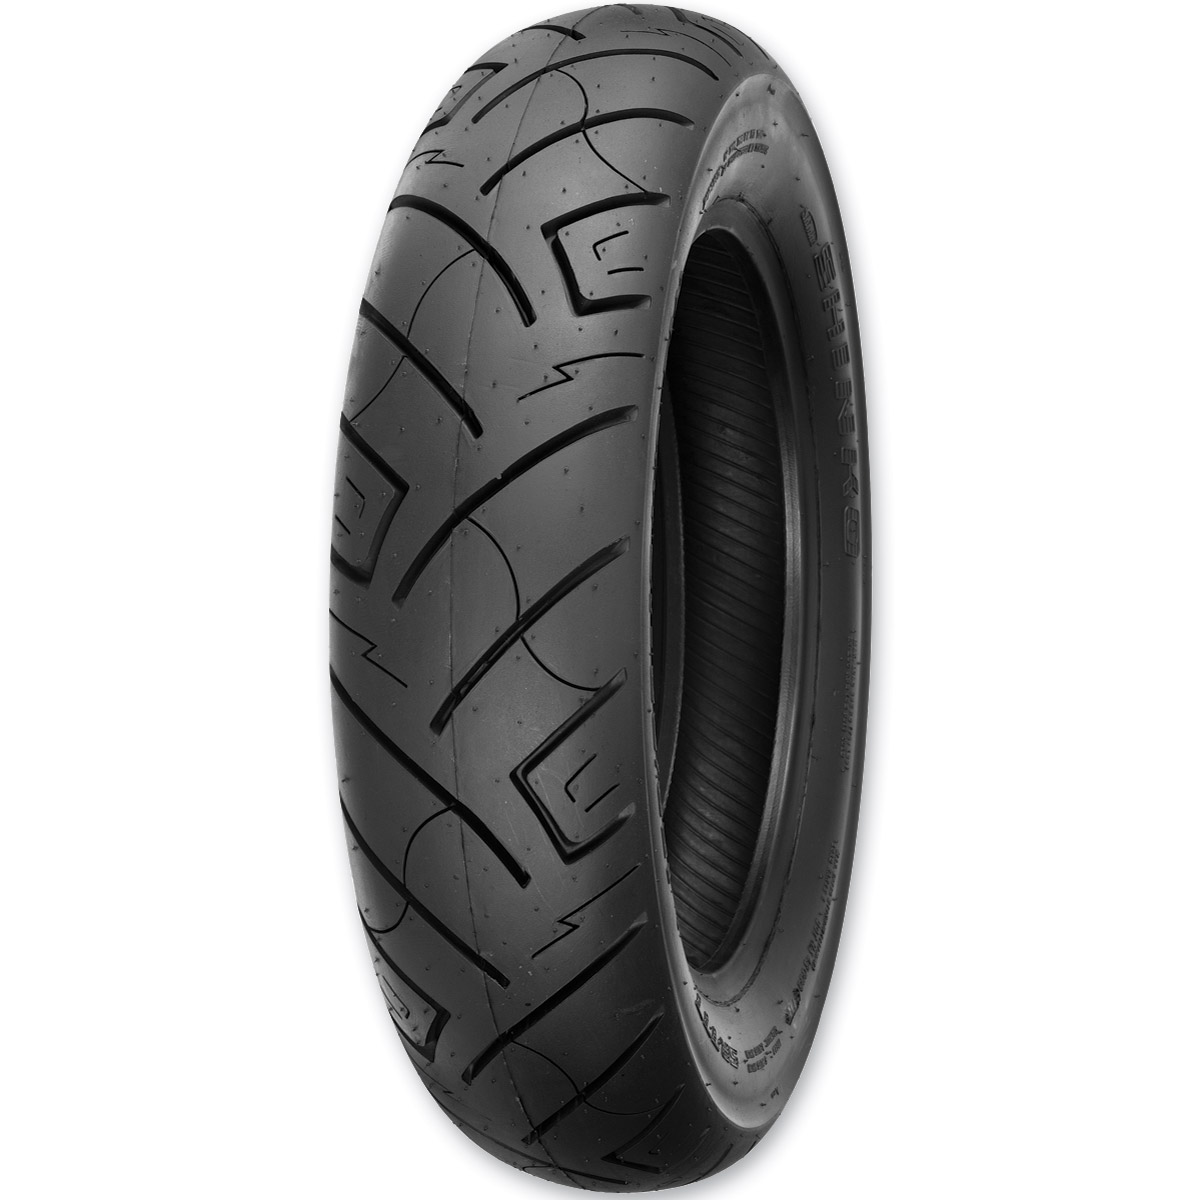 Shinko 777 160/70-17 Rear Tire